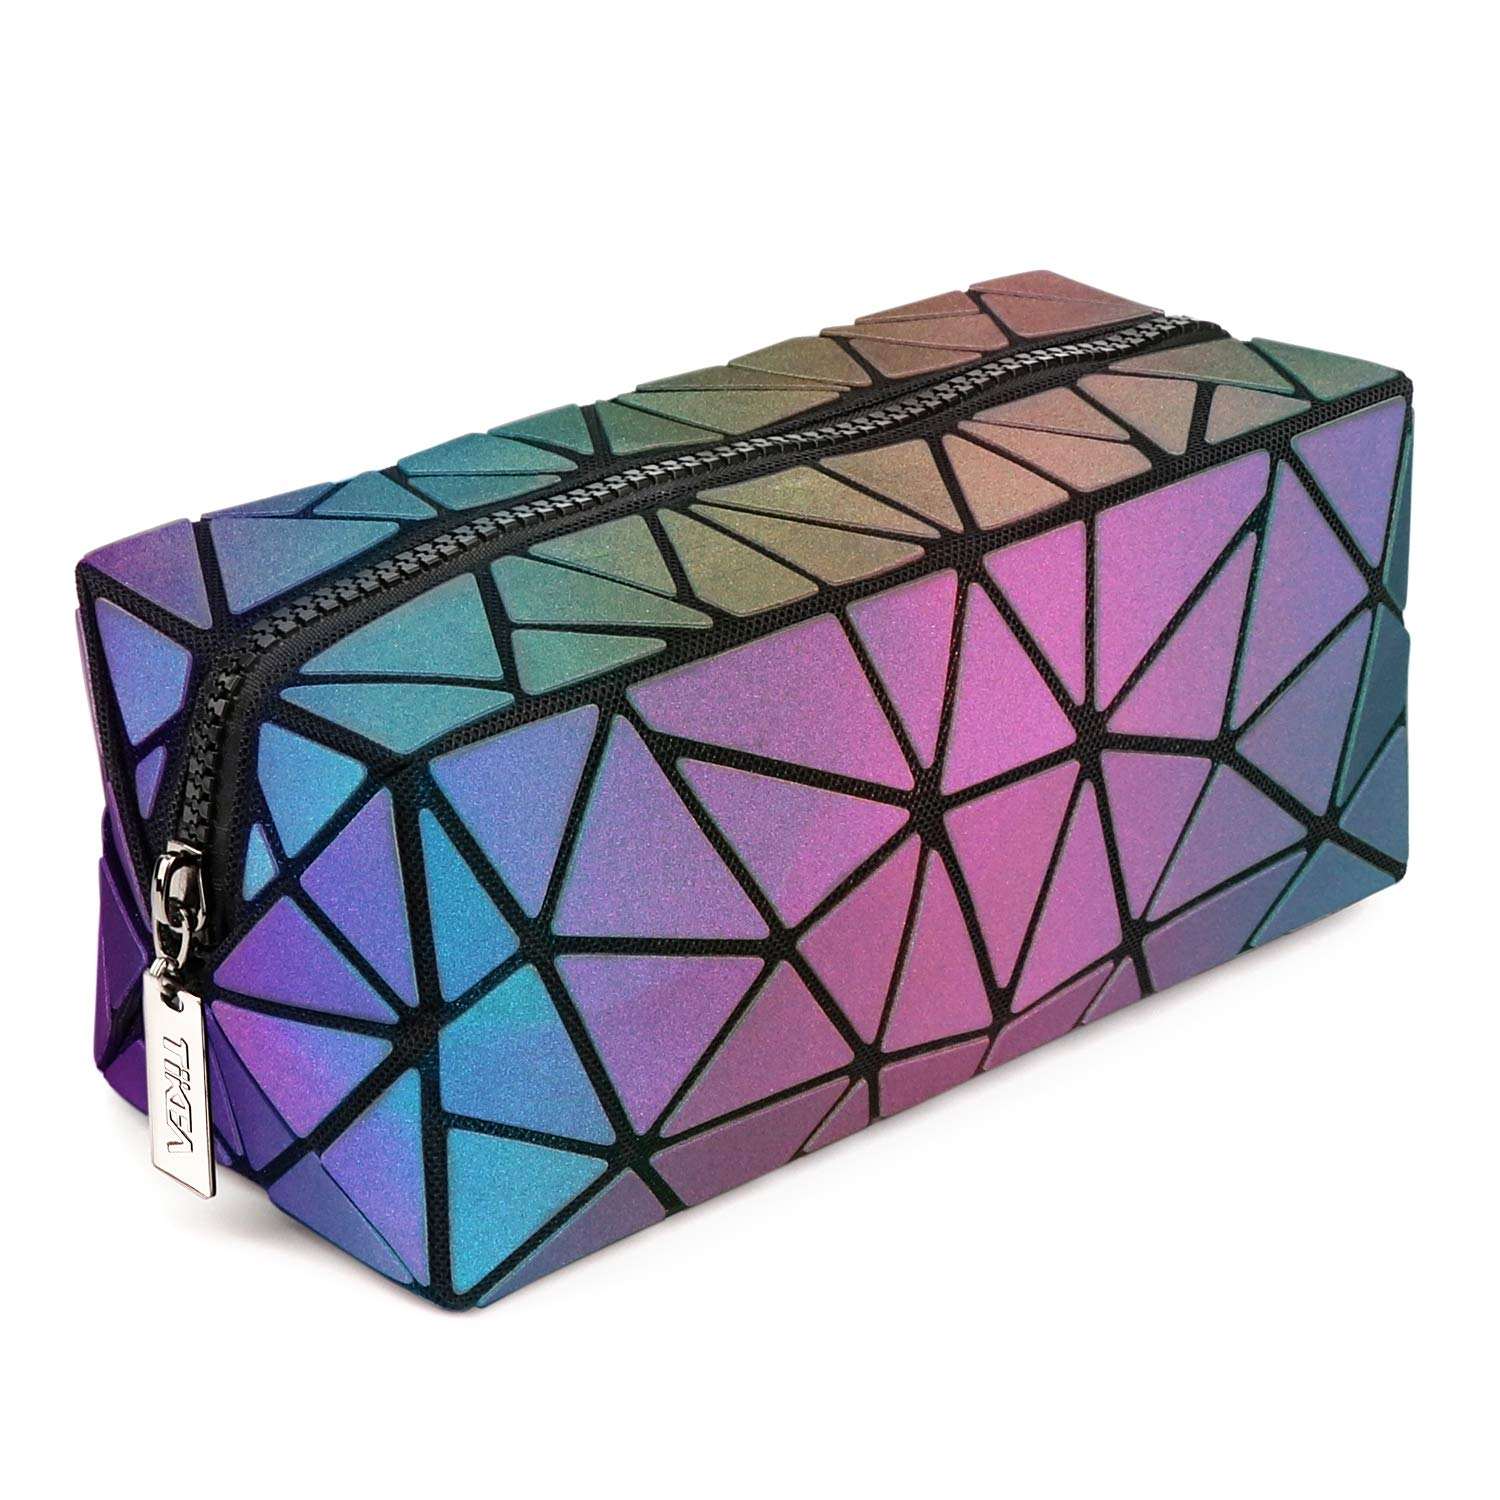 Tikea Cosmetic Bag - Makeup Pouch Geometric Clutch Luminous Beauty Bag Small Travel Cosmetic Wristlets, Holographic and Reflective